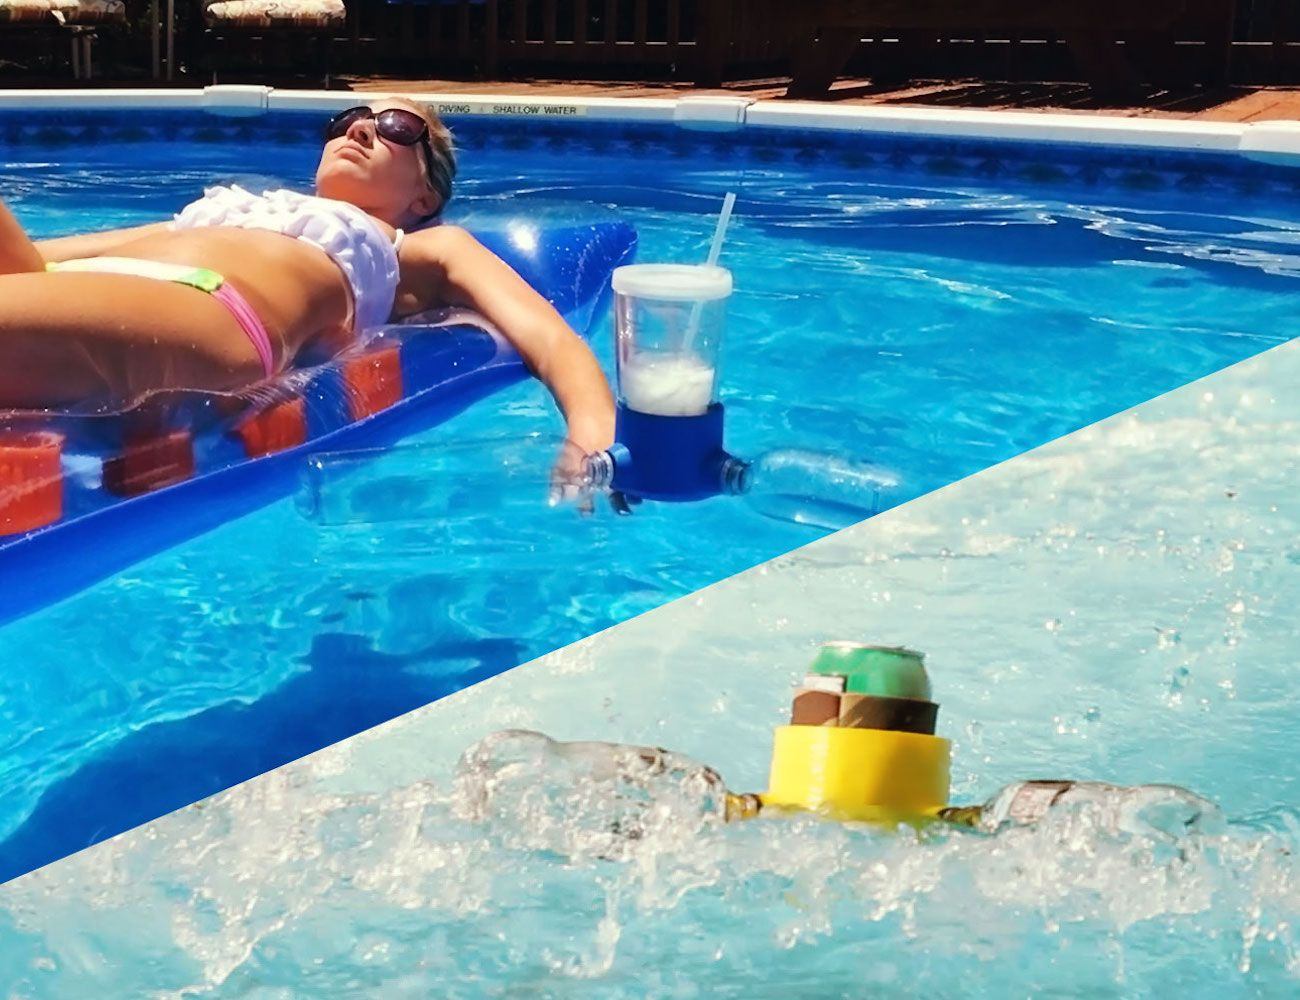 The Thirst Mate is an eco-friendly floating drink holder that upcycles plastic bottles to float.